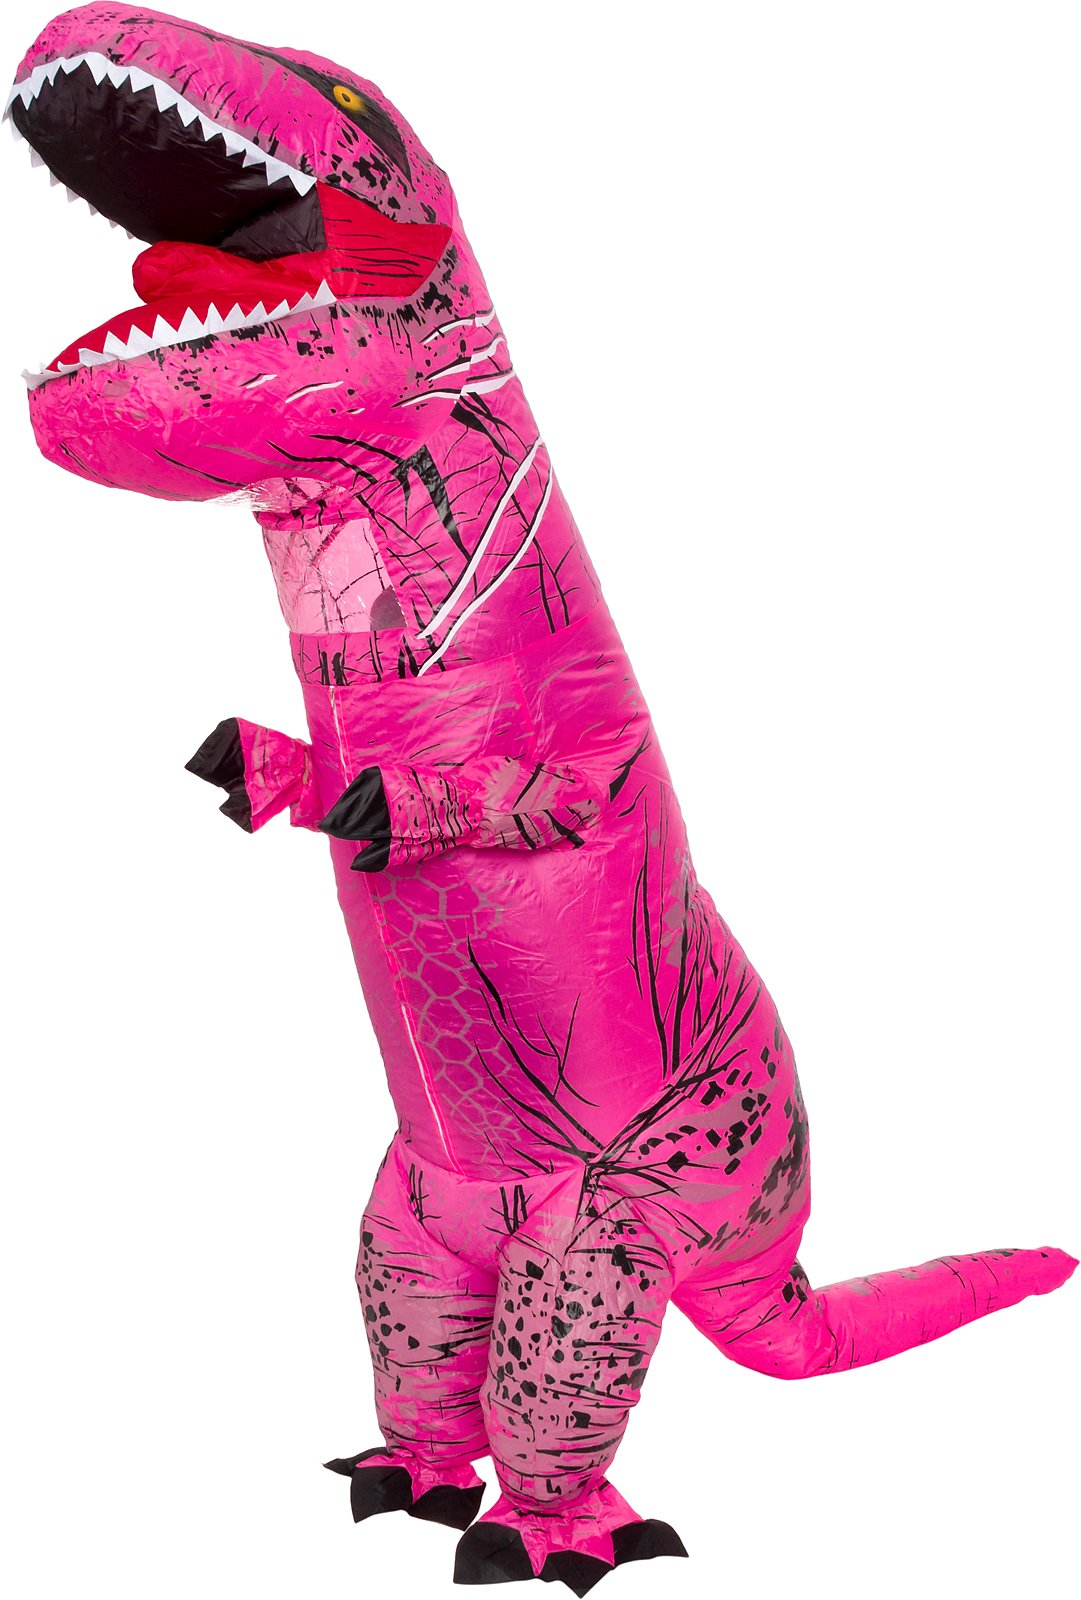 Splurge Worthy Toys and Games Inflatable Dinosaur Costume - Adult Giant Jurassic T-Rex Blow up Halloween Costume (Pink)